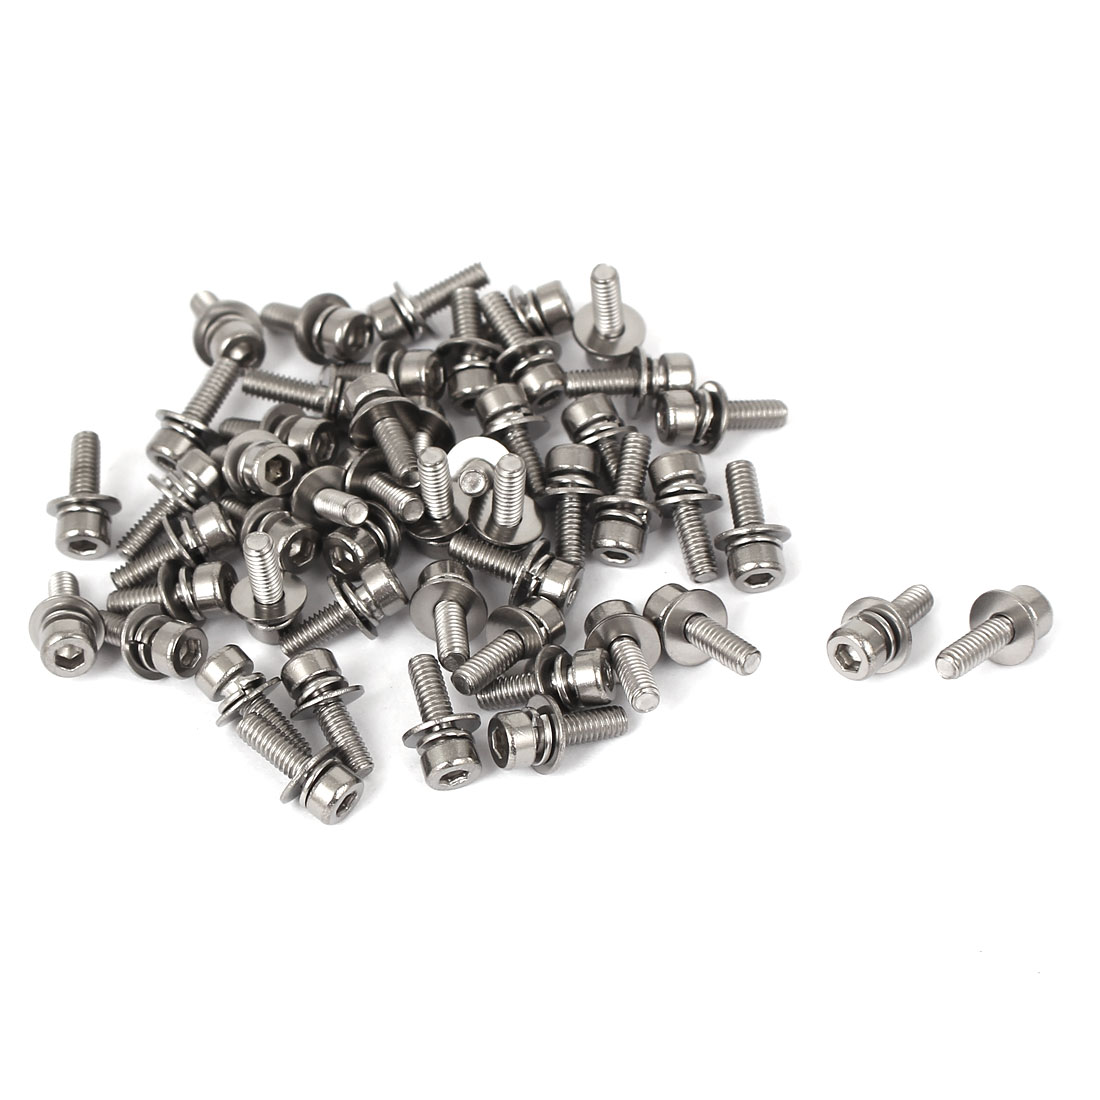 M2.5 x 8mm Thread 304 Stainless Steel Hex Socket Head Cap Screw w Washer 50 Pcs